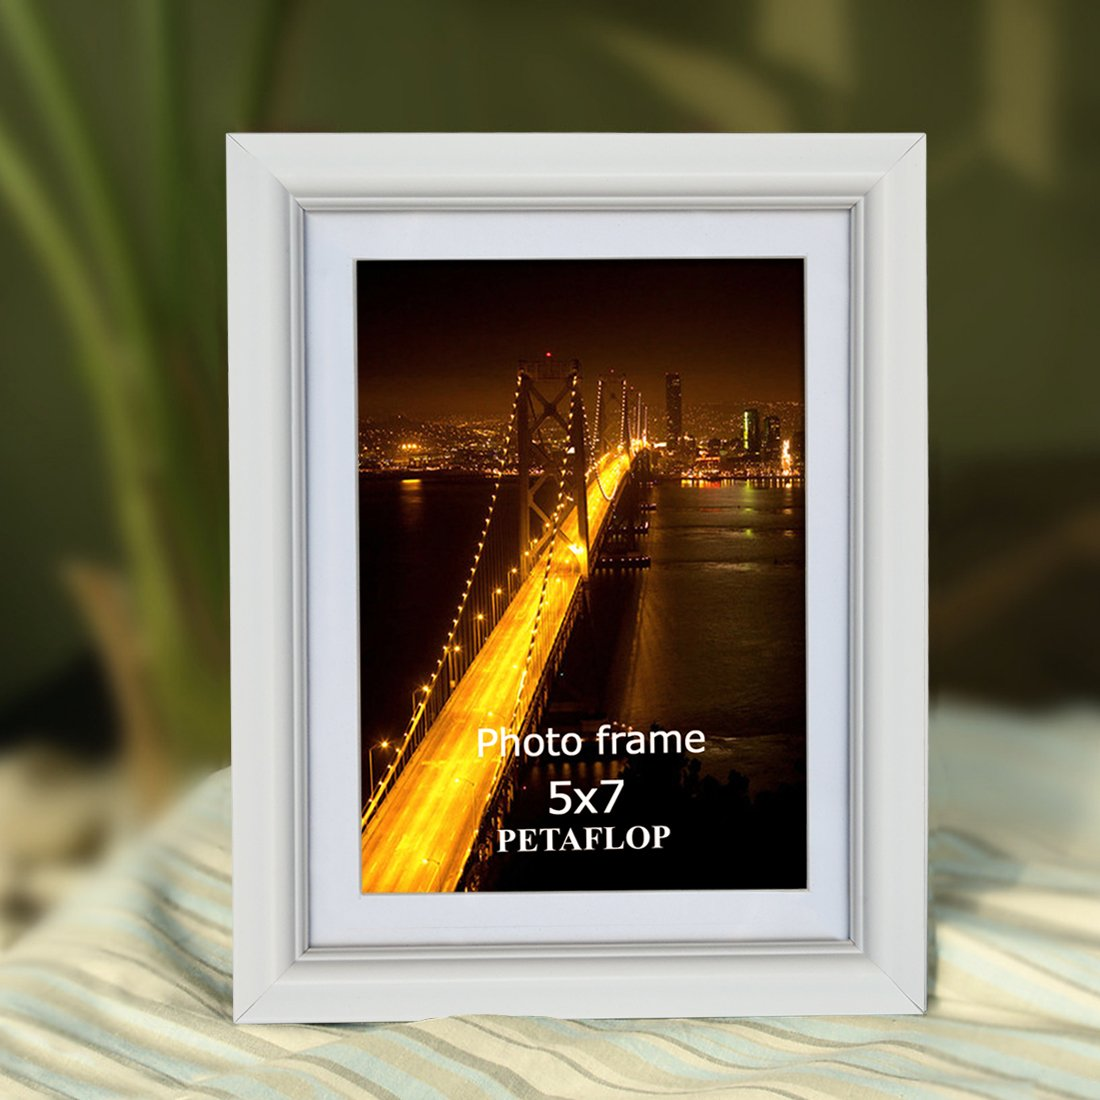 PETAFLOP 5x7 Picture Frame Set Hold 5 by 7 inch White Photo Frames, Set of 8 Pieces by PETAFLOP (Image #2)